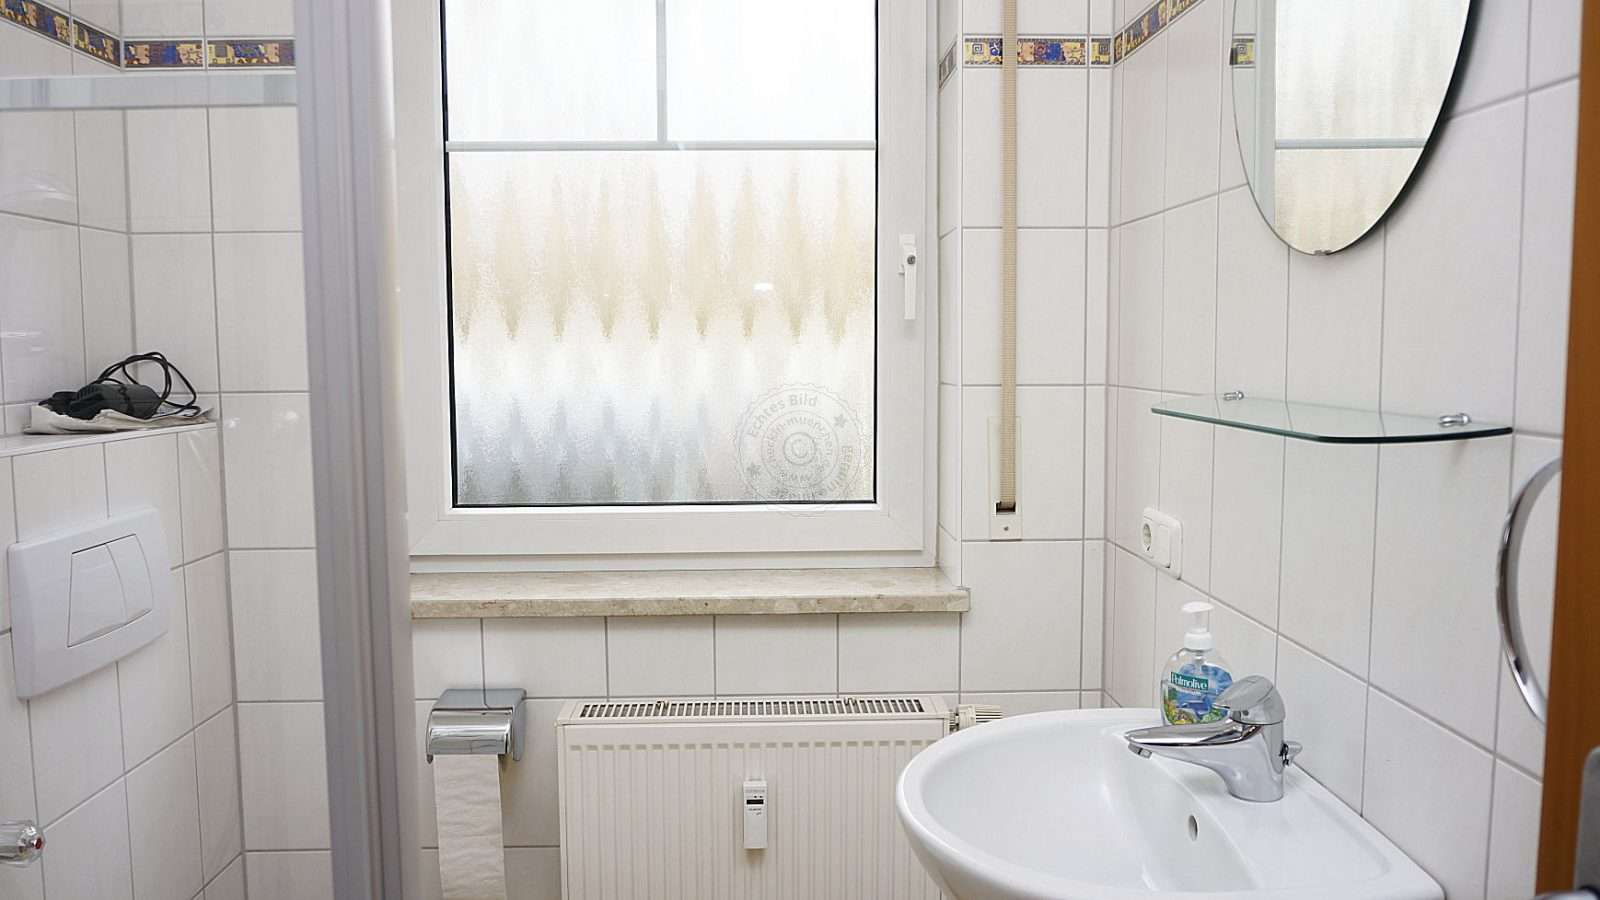 Private bathroom with matt window